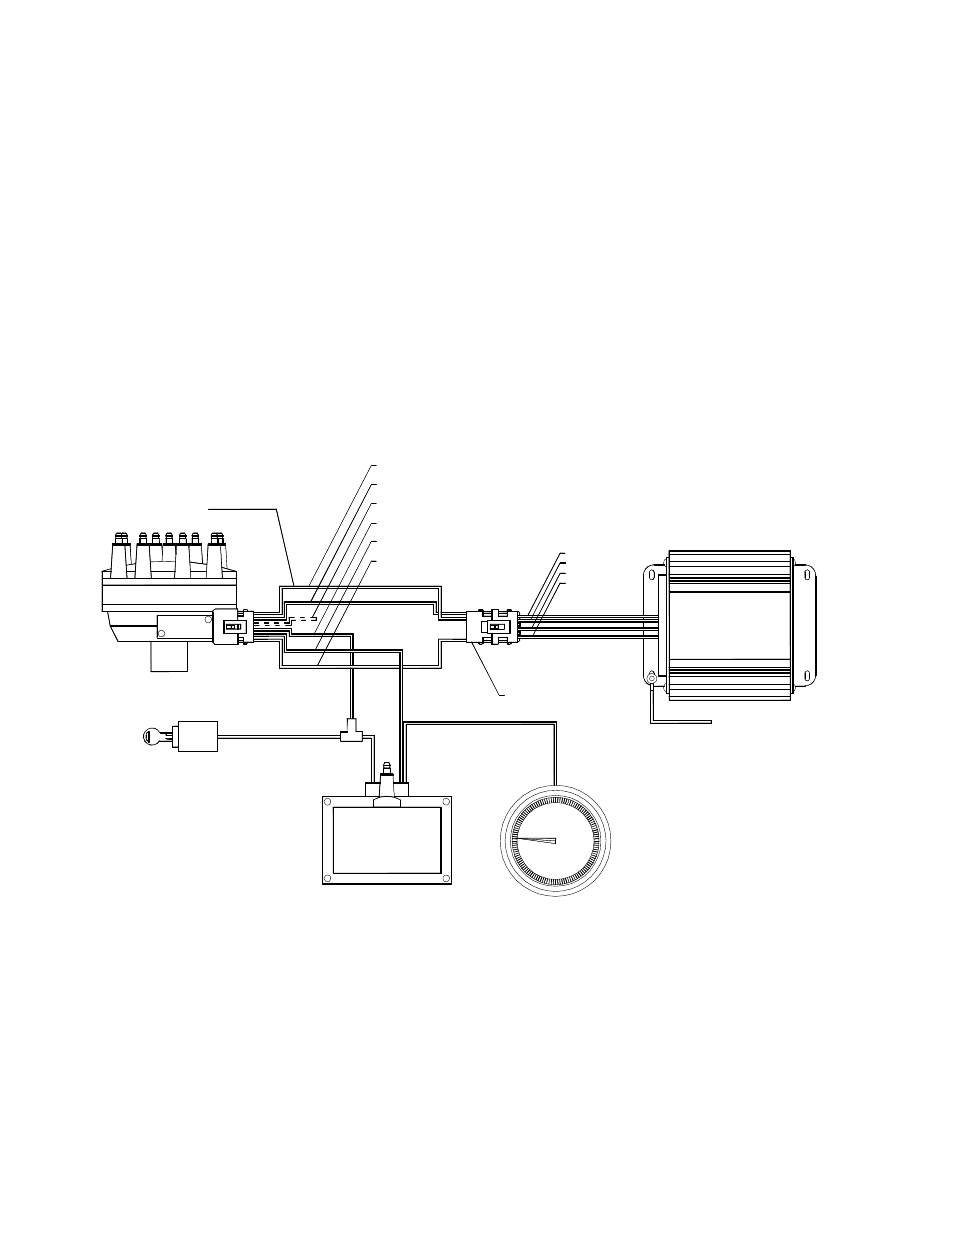 Appendix 10 wiring diagrams, Figure 61 | Holley COMMANDER 950 User Manual |  Page 84 / 98